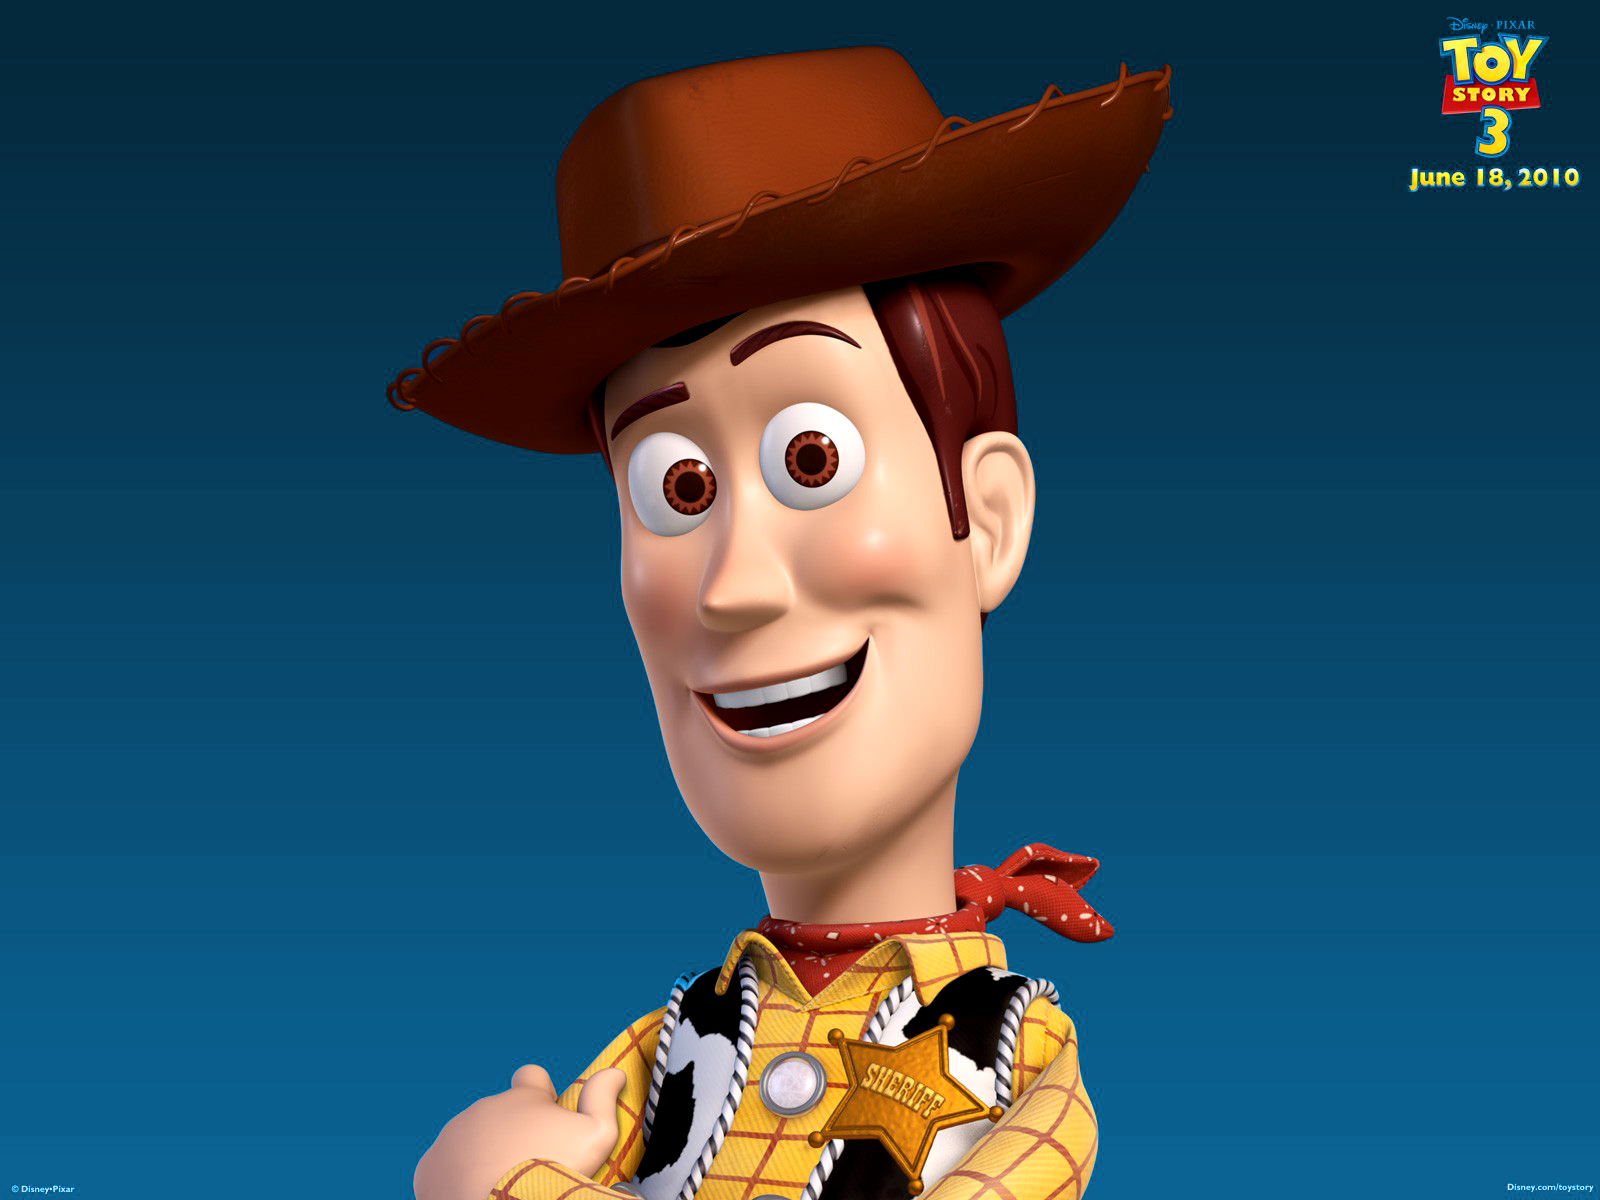 Toy story 3 hd wallpaper posters desktop wallpapers - Toy story wallpaper ...